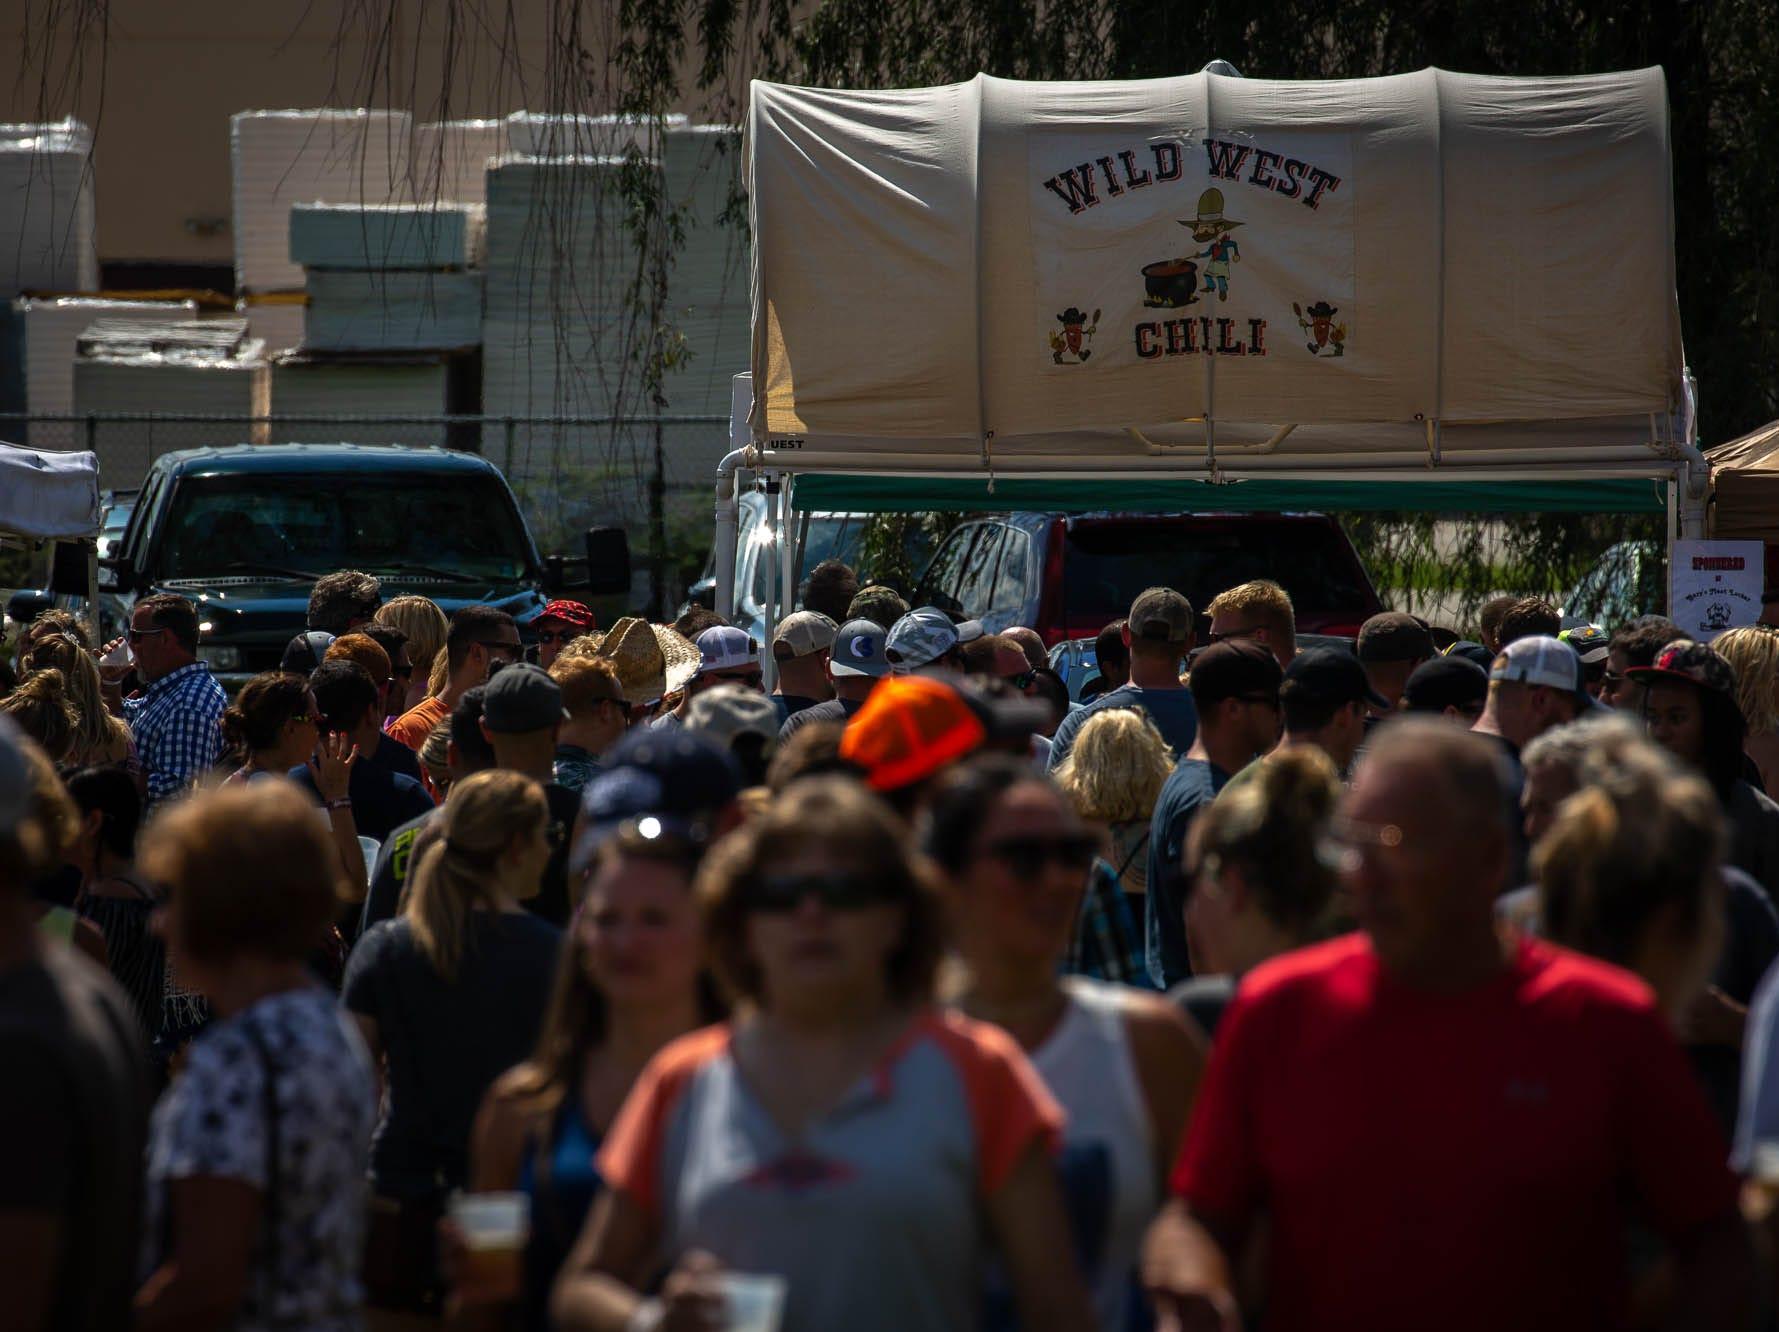 Crowds pass through the 23rd Annual Hanover Chili Cook Off, Sunday, Sept. 2, 2018, at Good Field in Hanover.